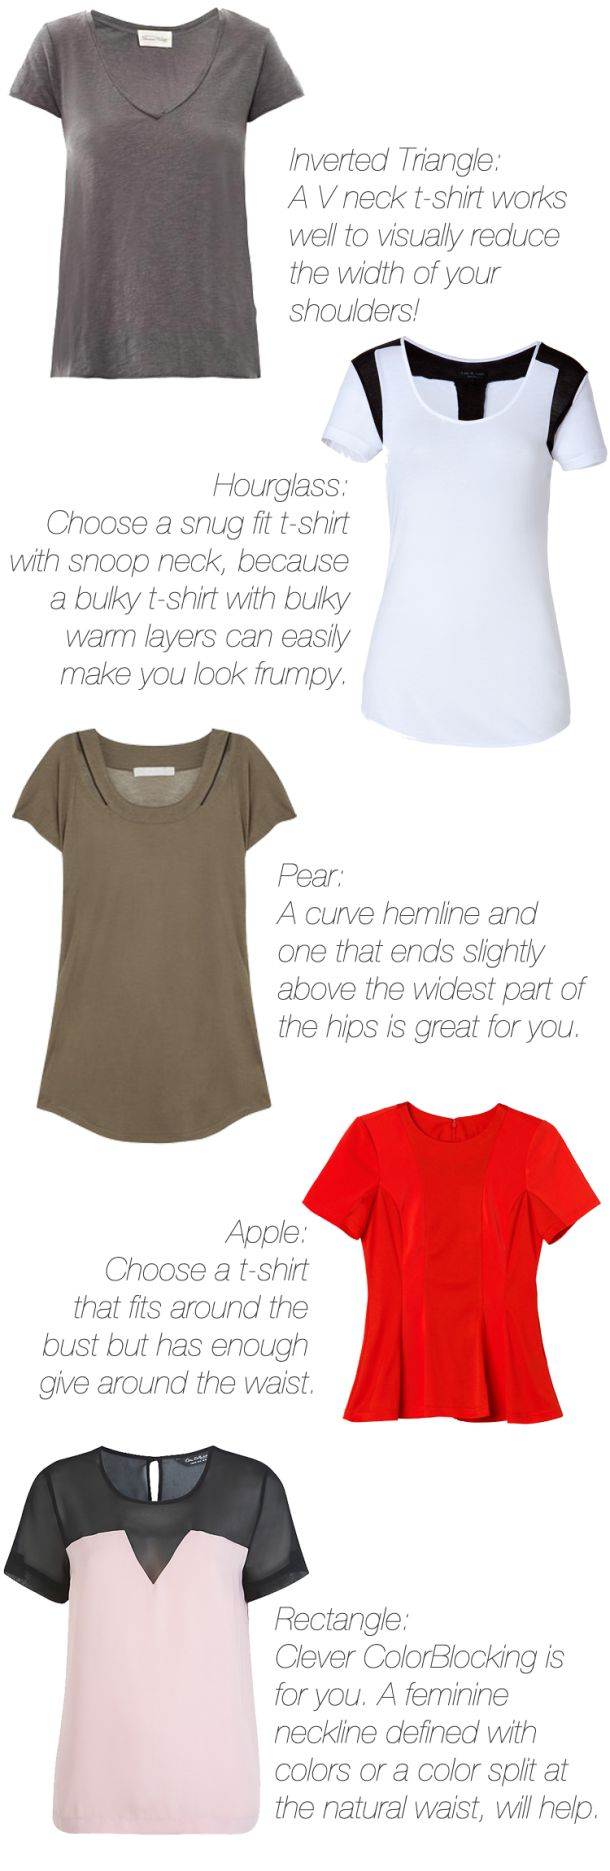 which t-shirt / tee suits your body type? V neck, crew neck etc for inverted triangle, par body shape, hourglass, rectangle ( sporty ruler) and apple